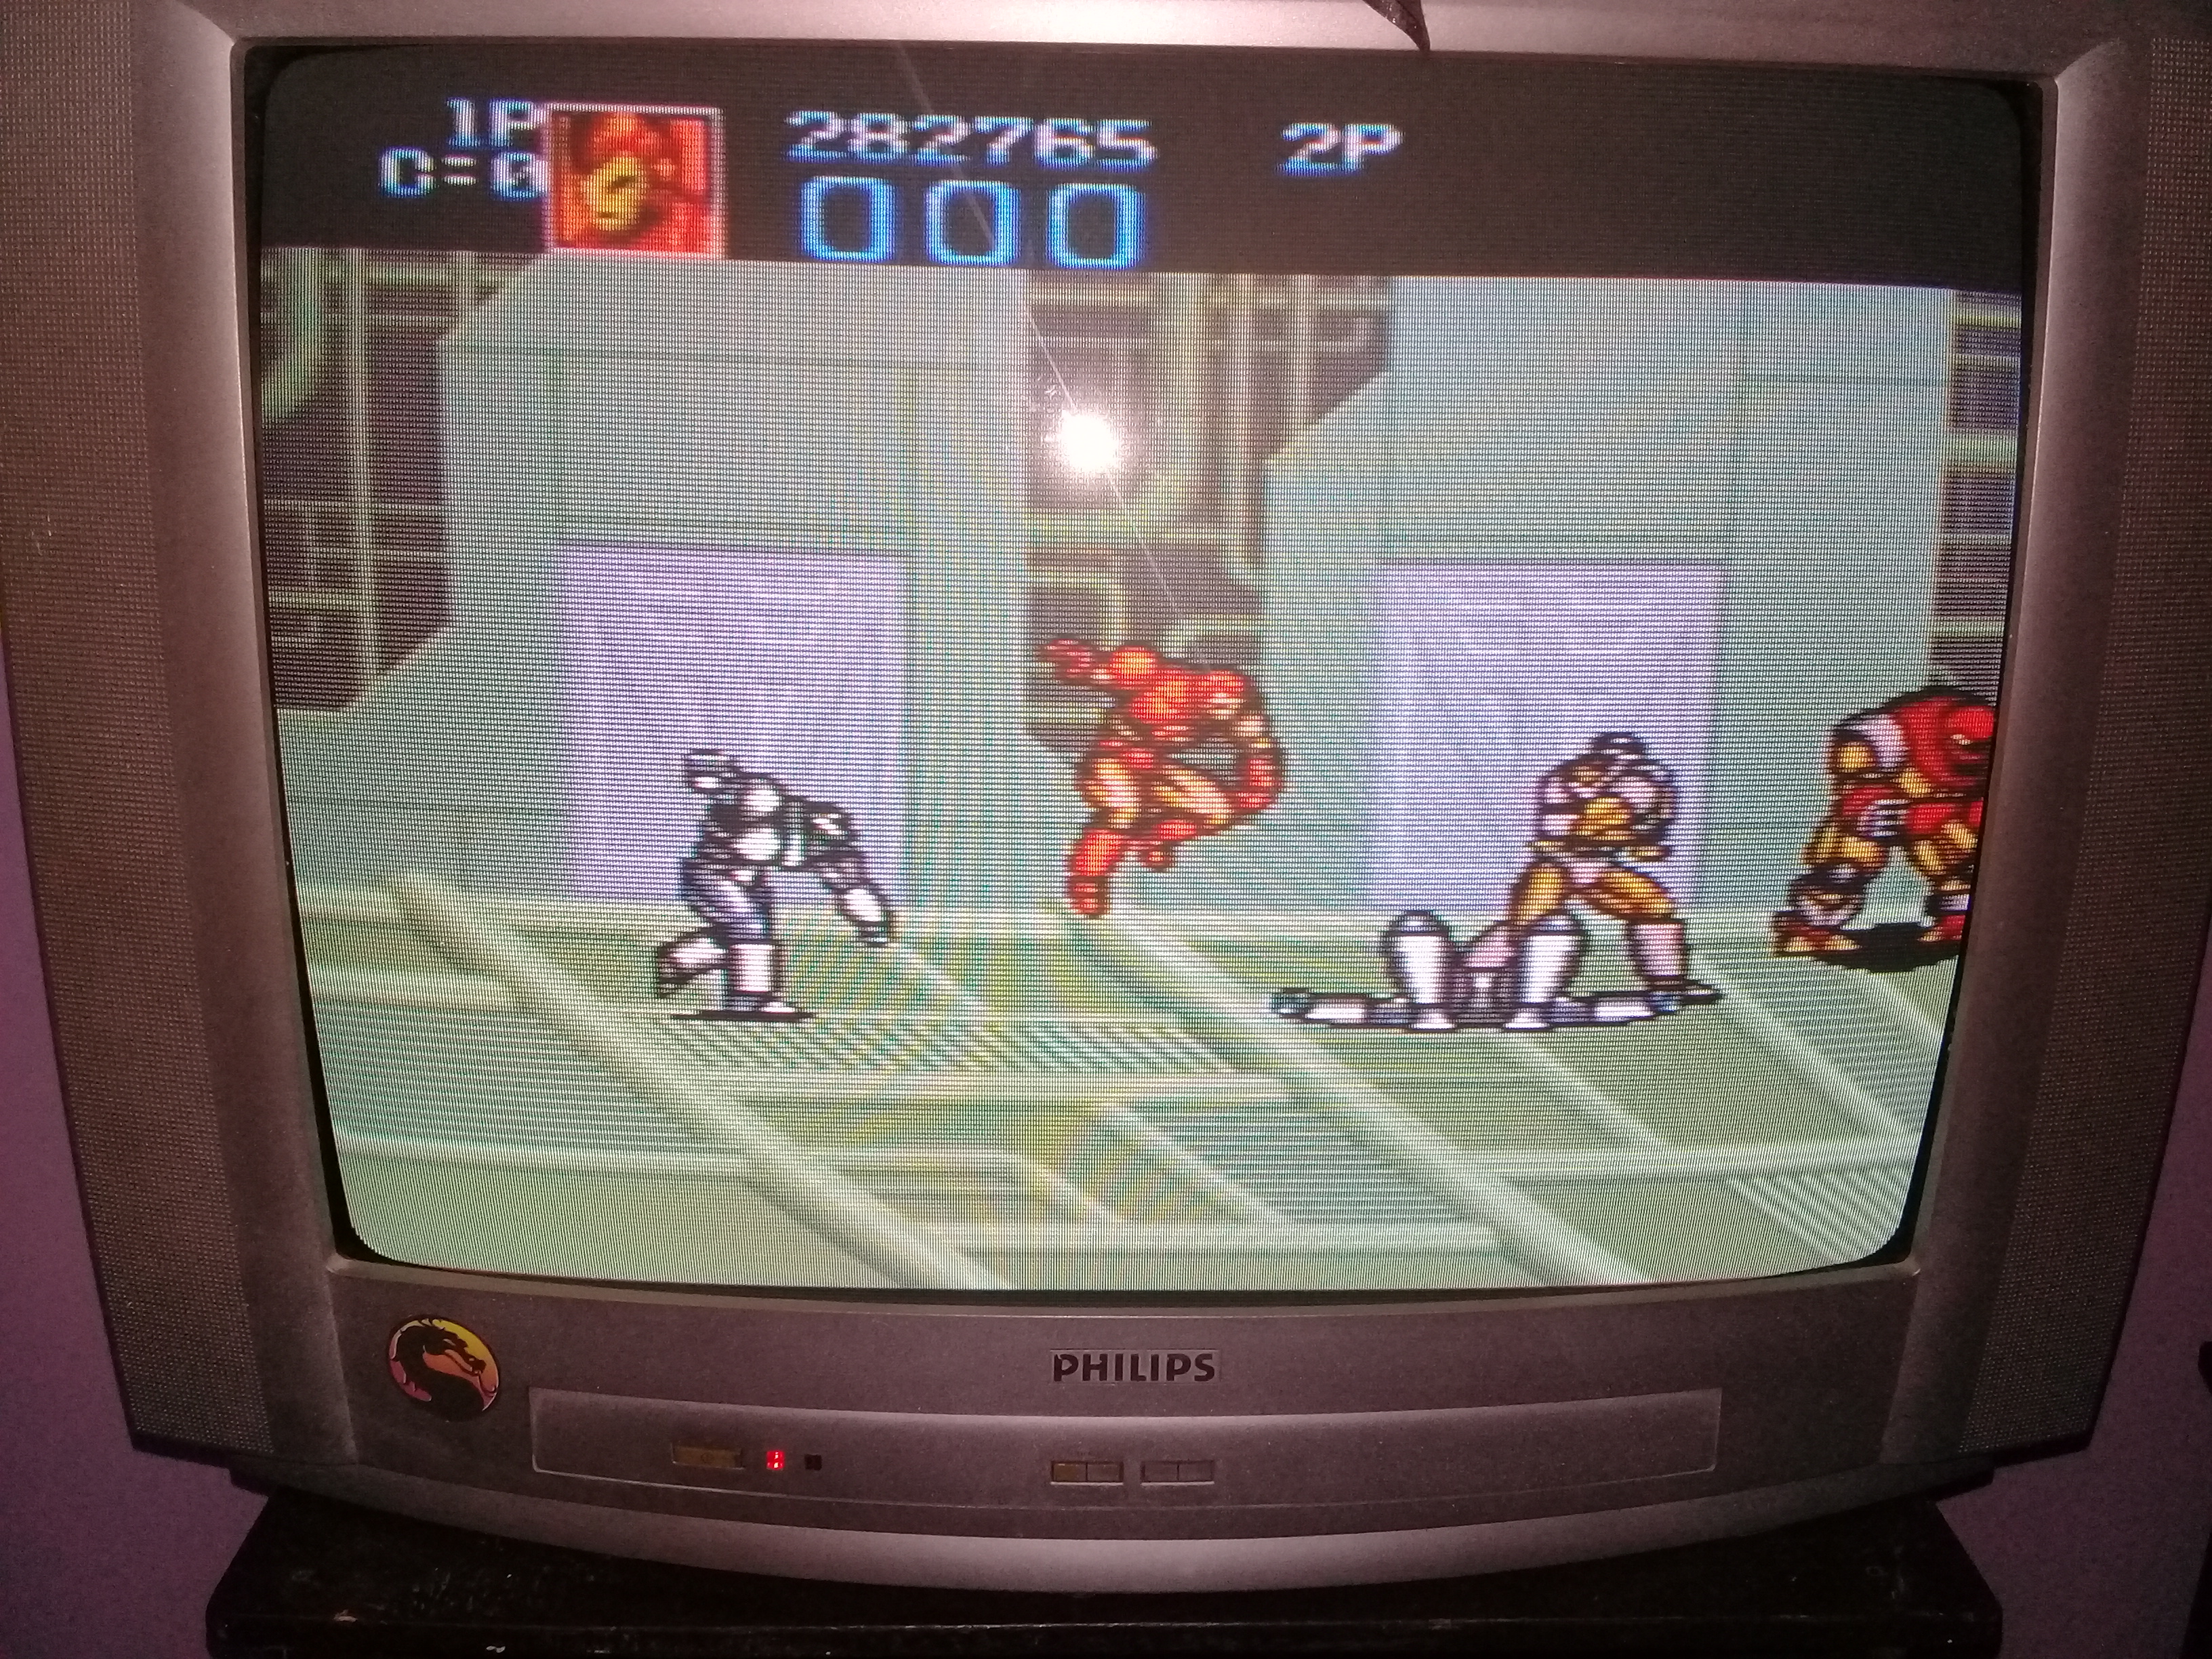 omargeddon: Captain America and The Avengers [Easy] (Sega Genesis / MegaDrive) 282,765 points on 2020-05-09 19:36:47